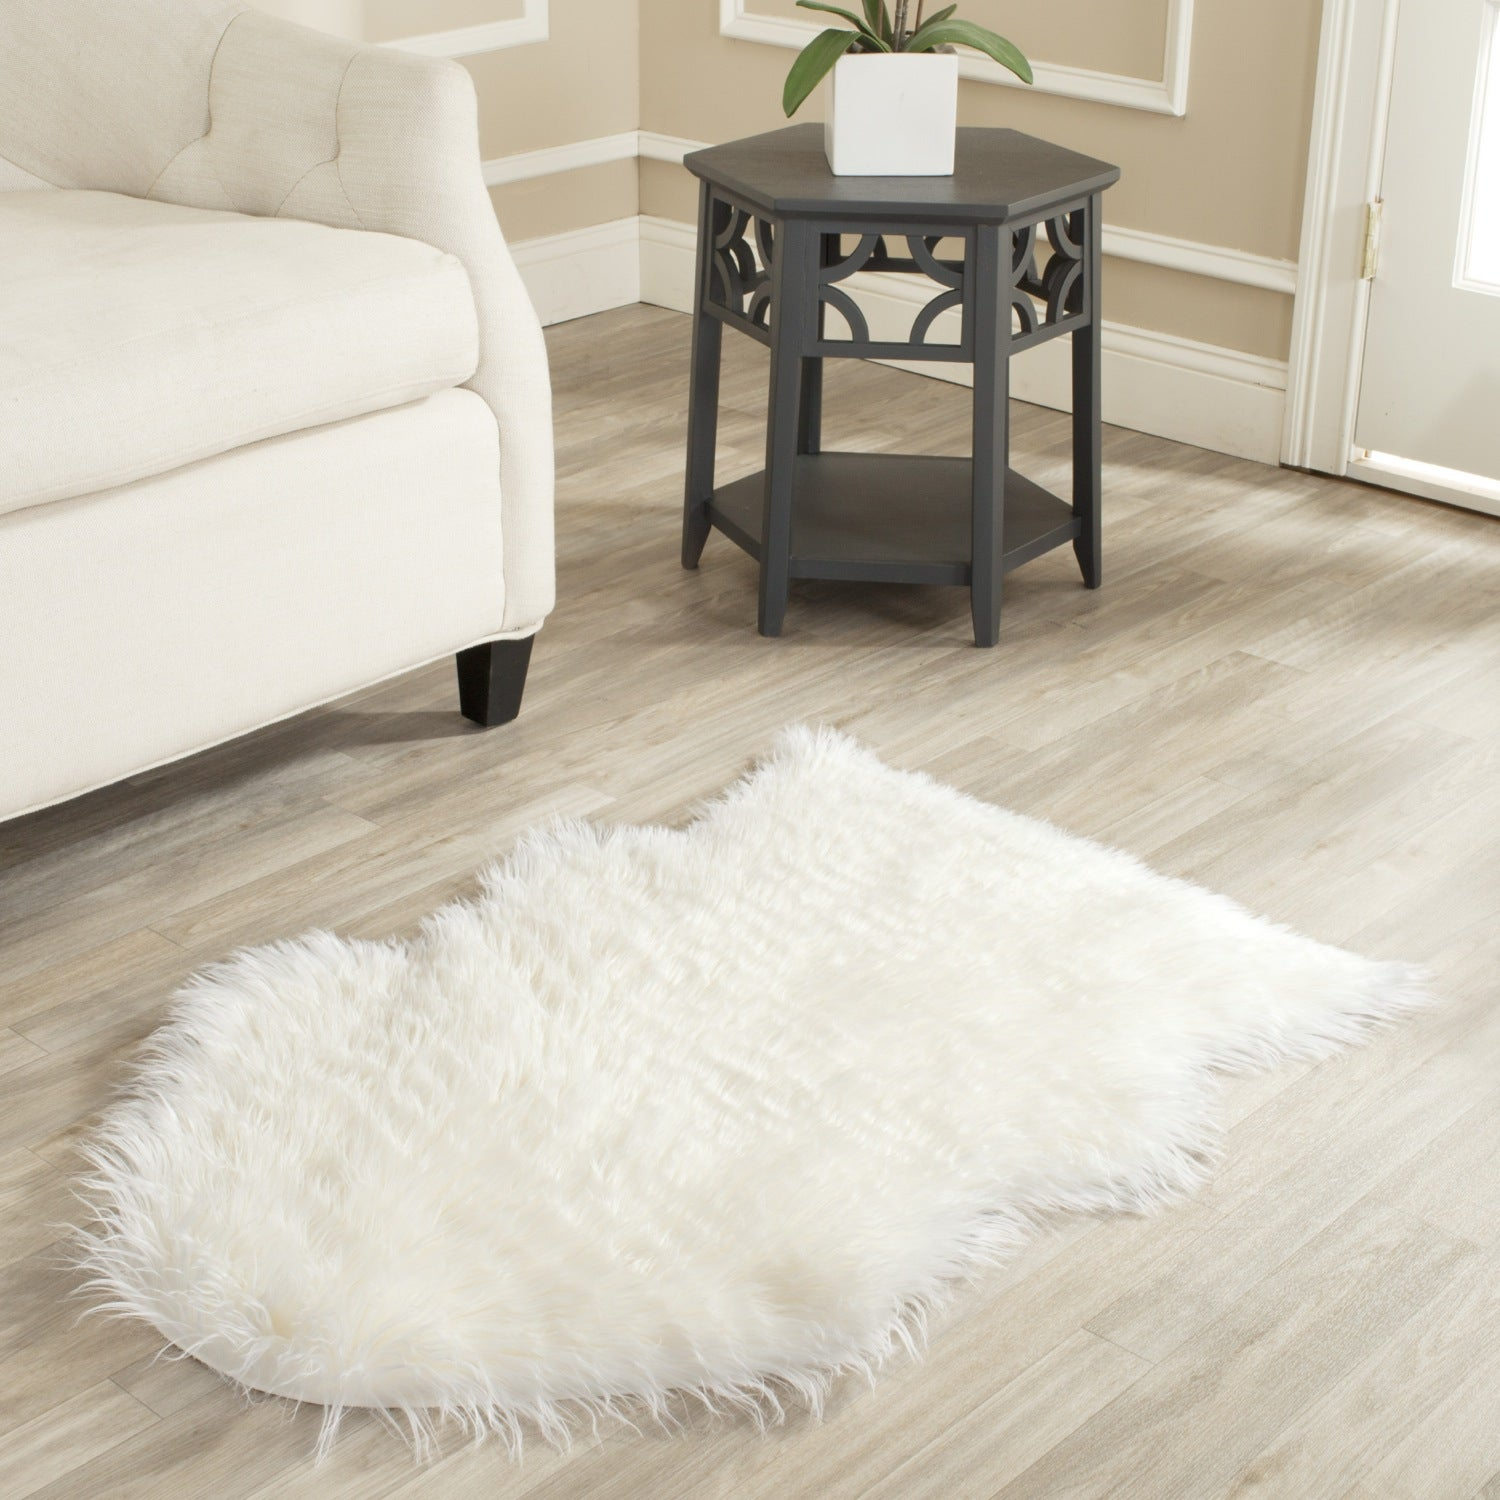 Safavieh hand made faux sheep skin ivory rug 2 39 x 3 39 overstock shopping great deals on - Faux animal skin rugs ...